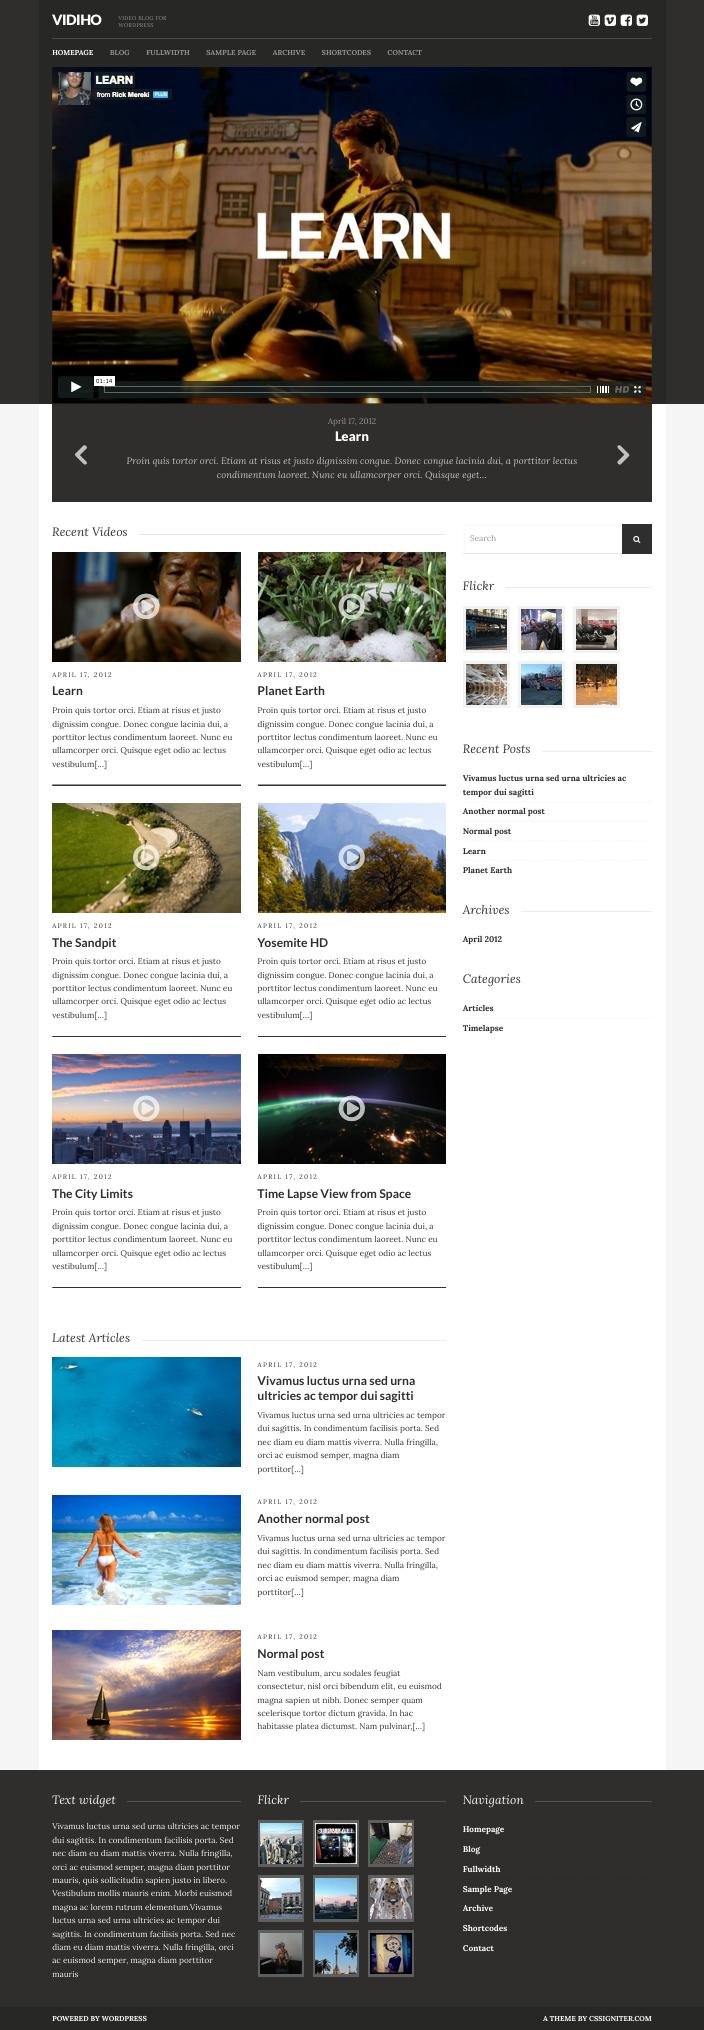 Vidiho WordPress Video Blogging Theme